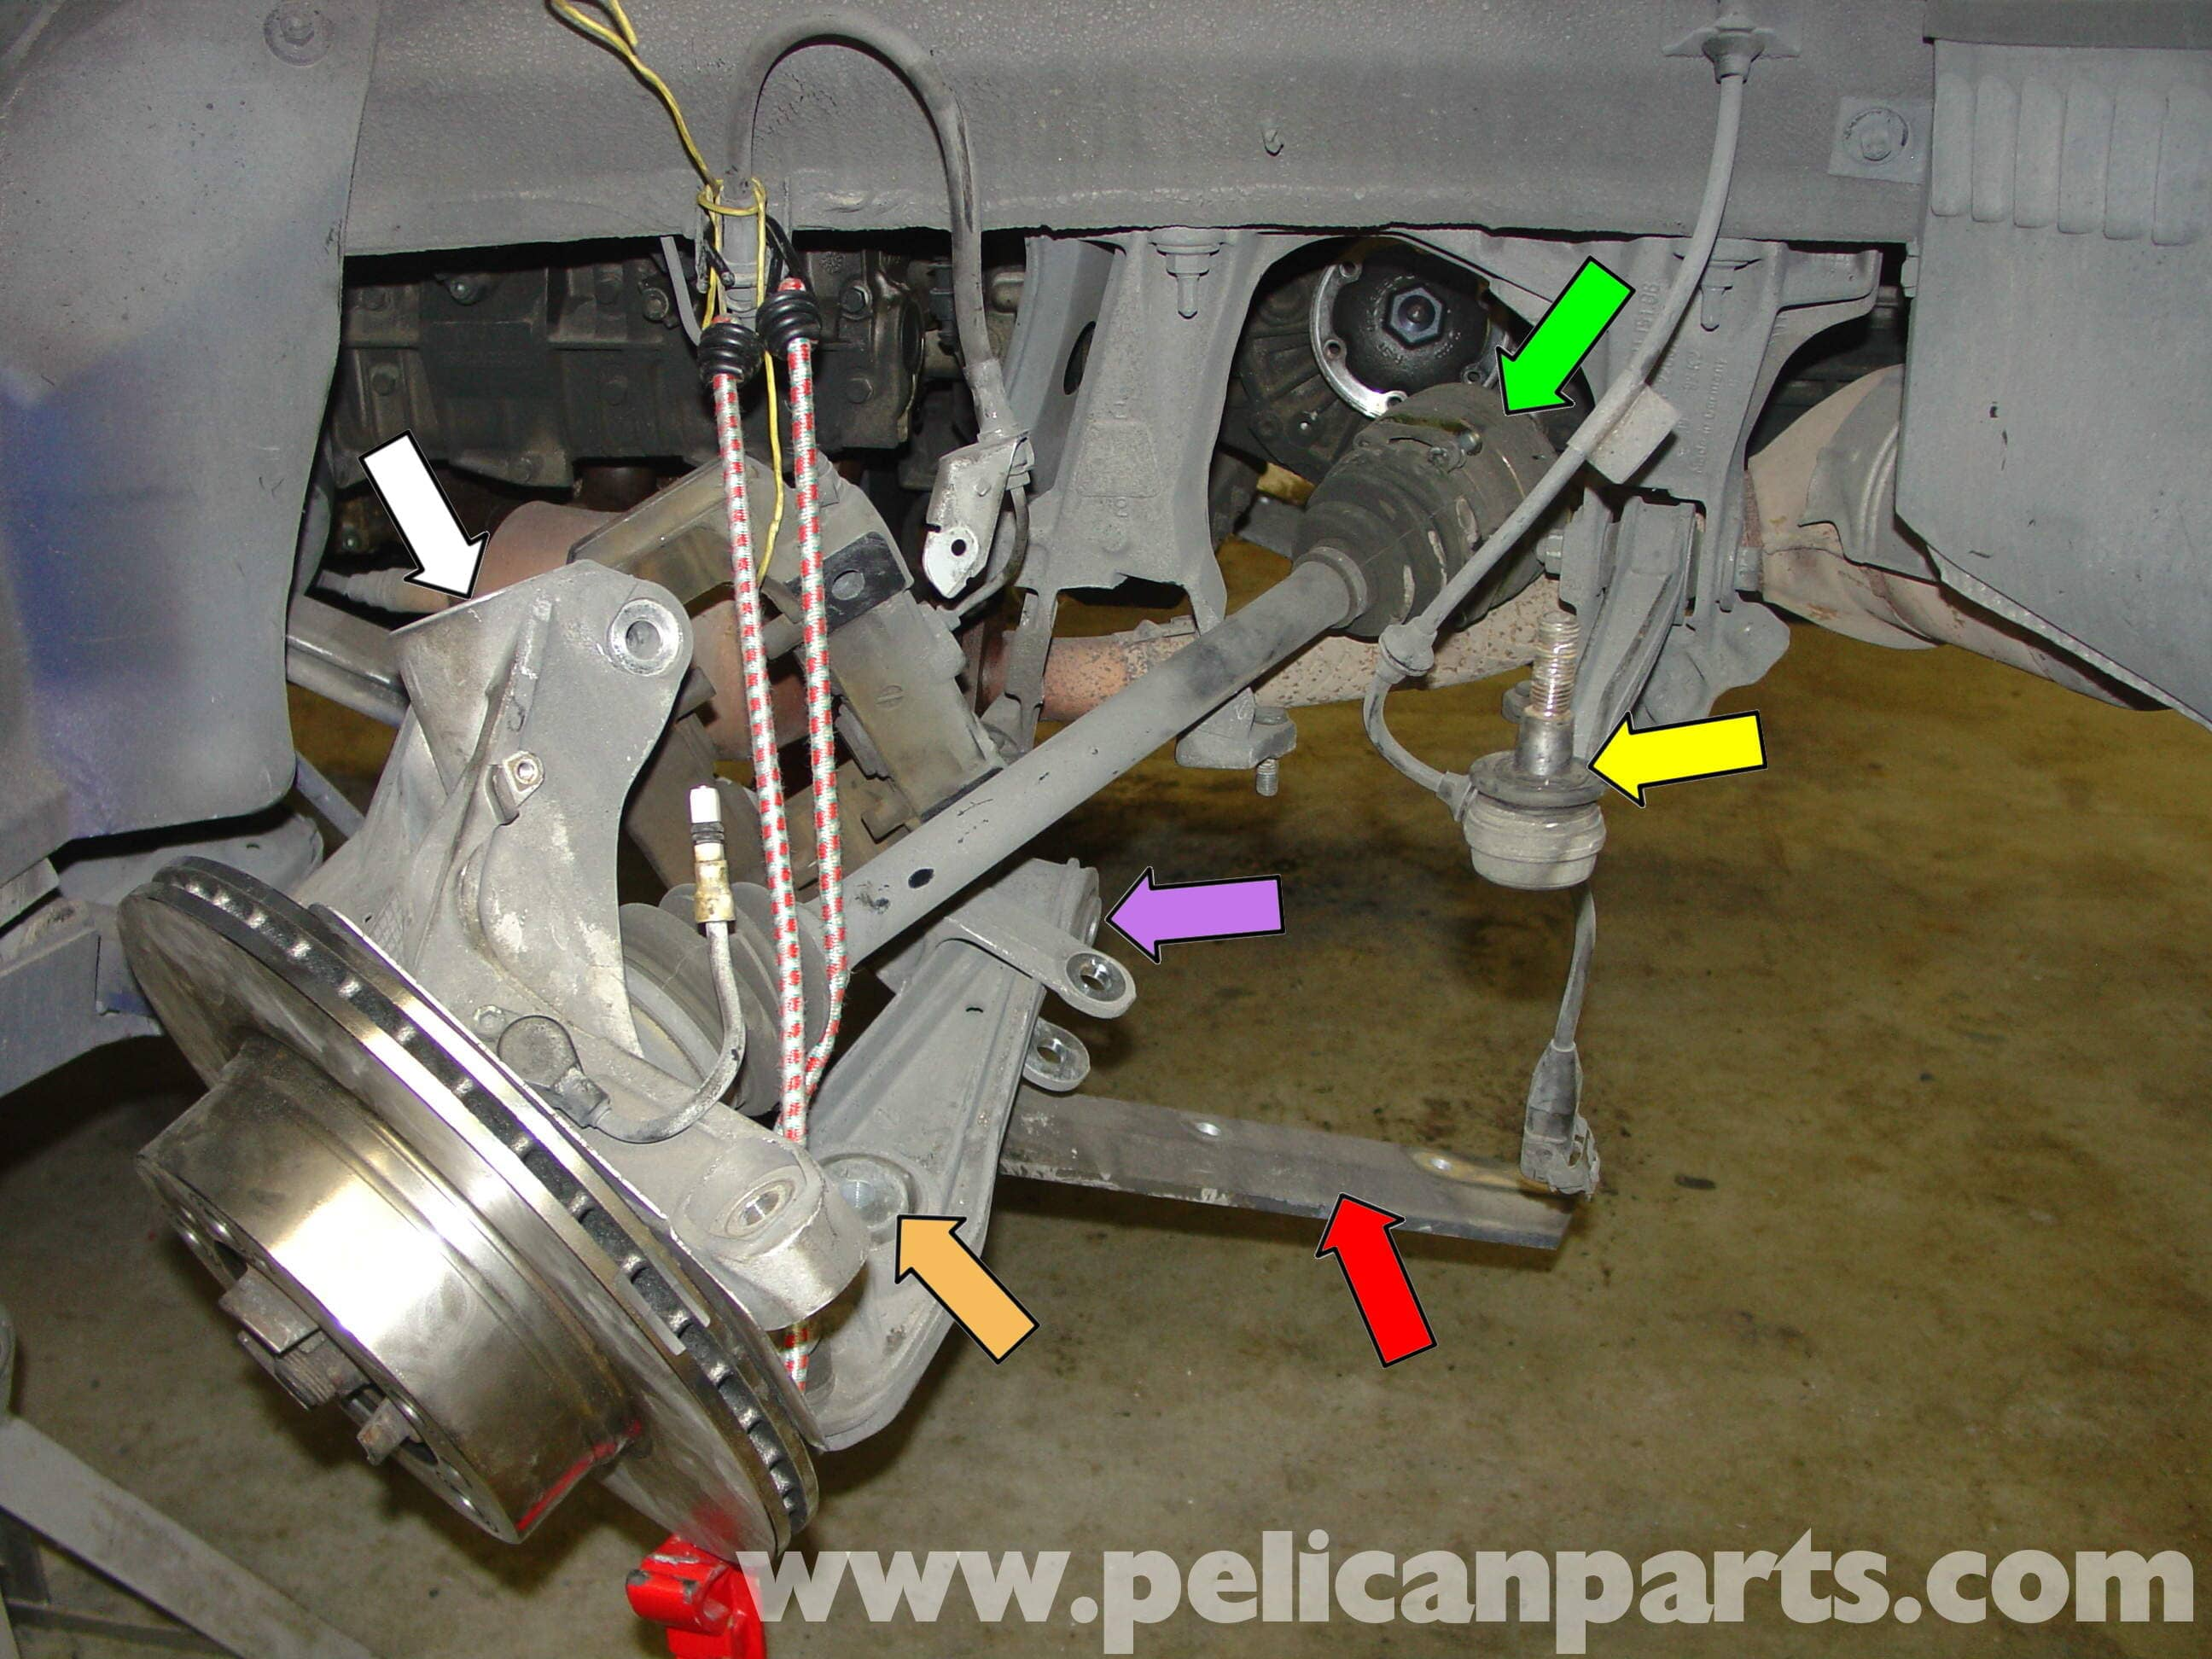 Porsche Boxster Shocks Amp Spring Replacement 986 987 1997 08 Pelican Parts Technical Article